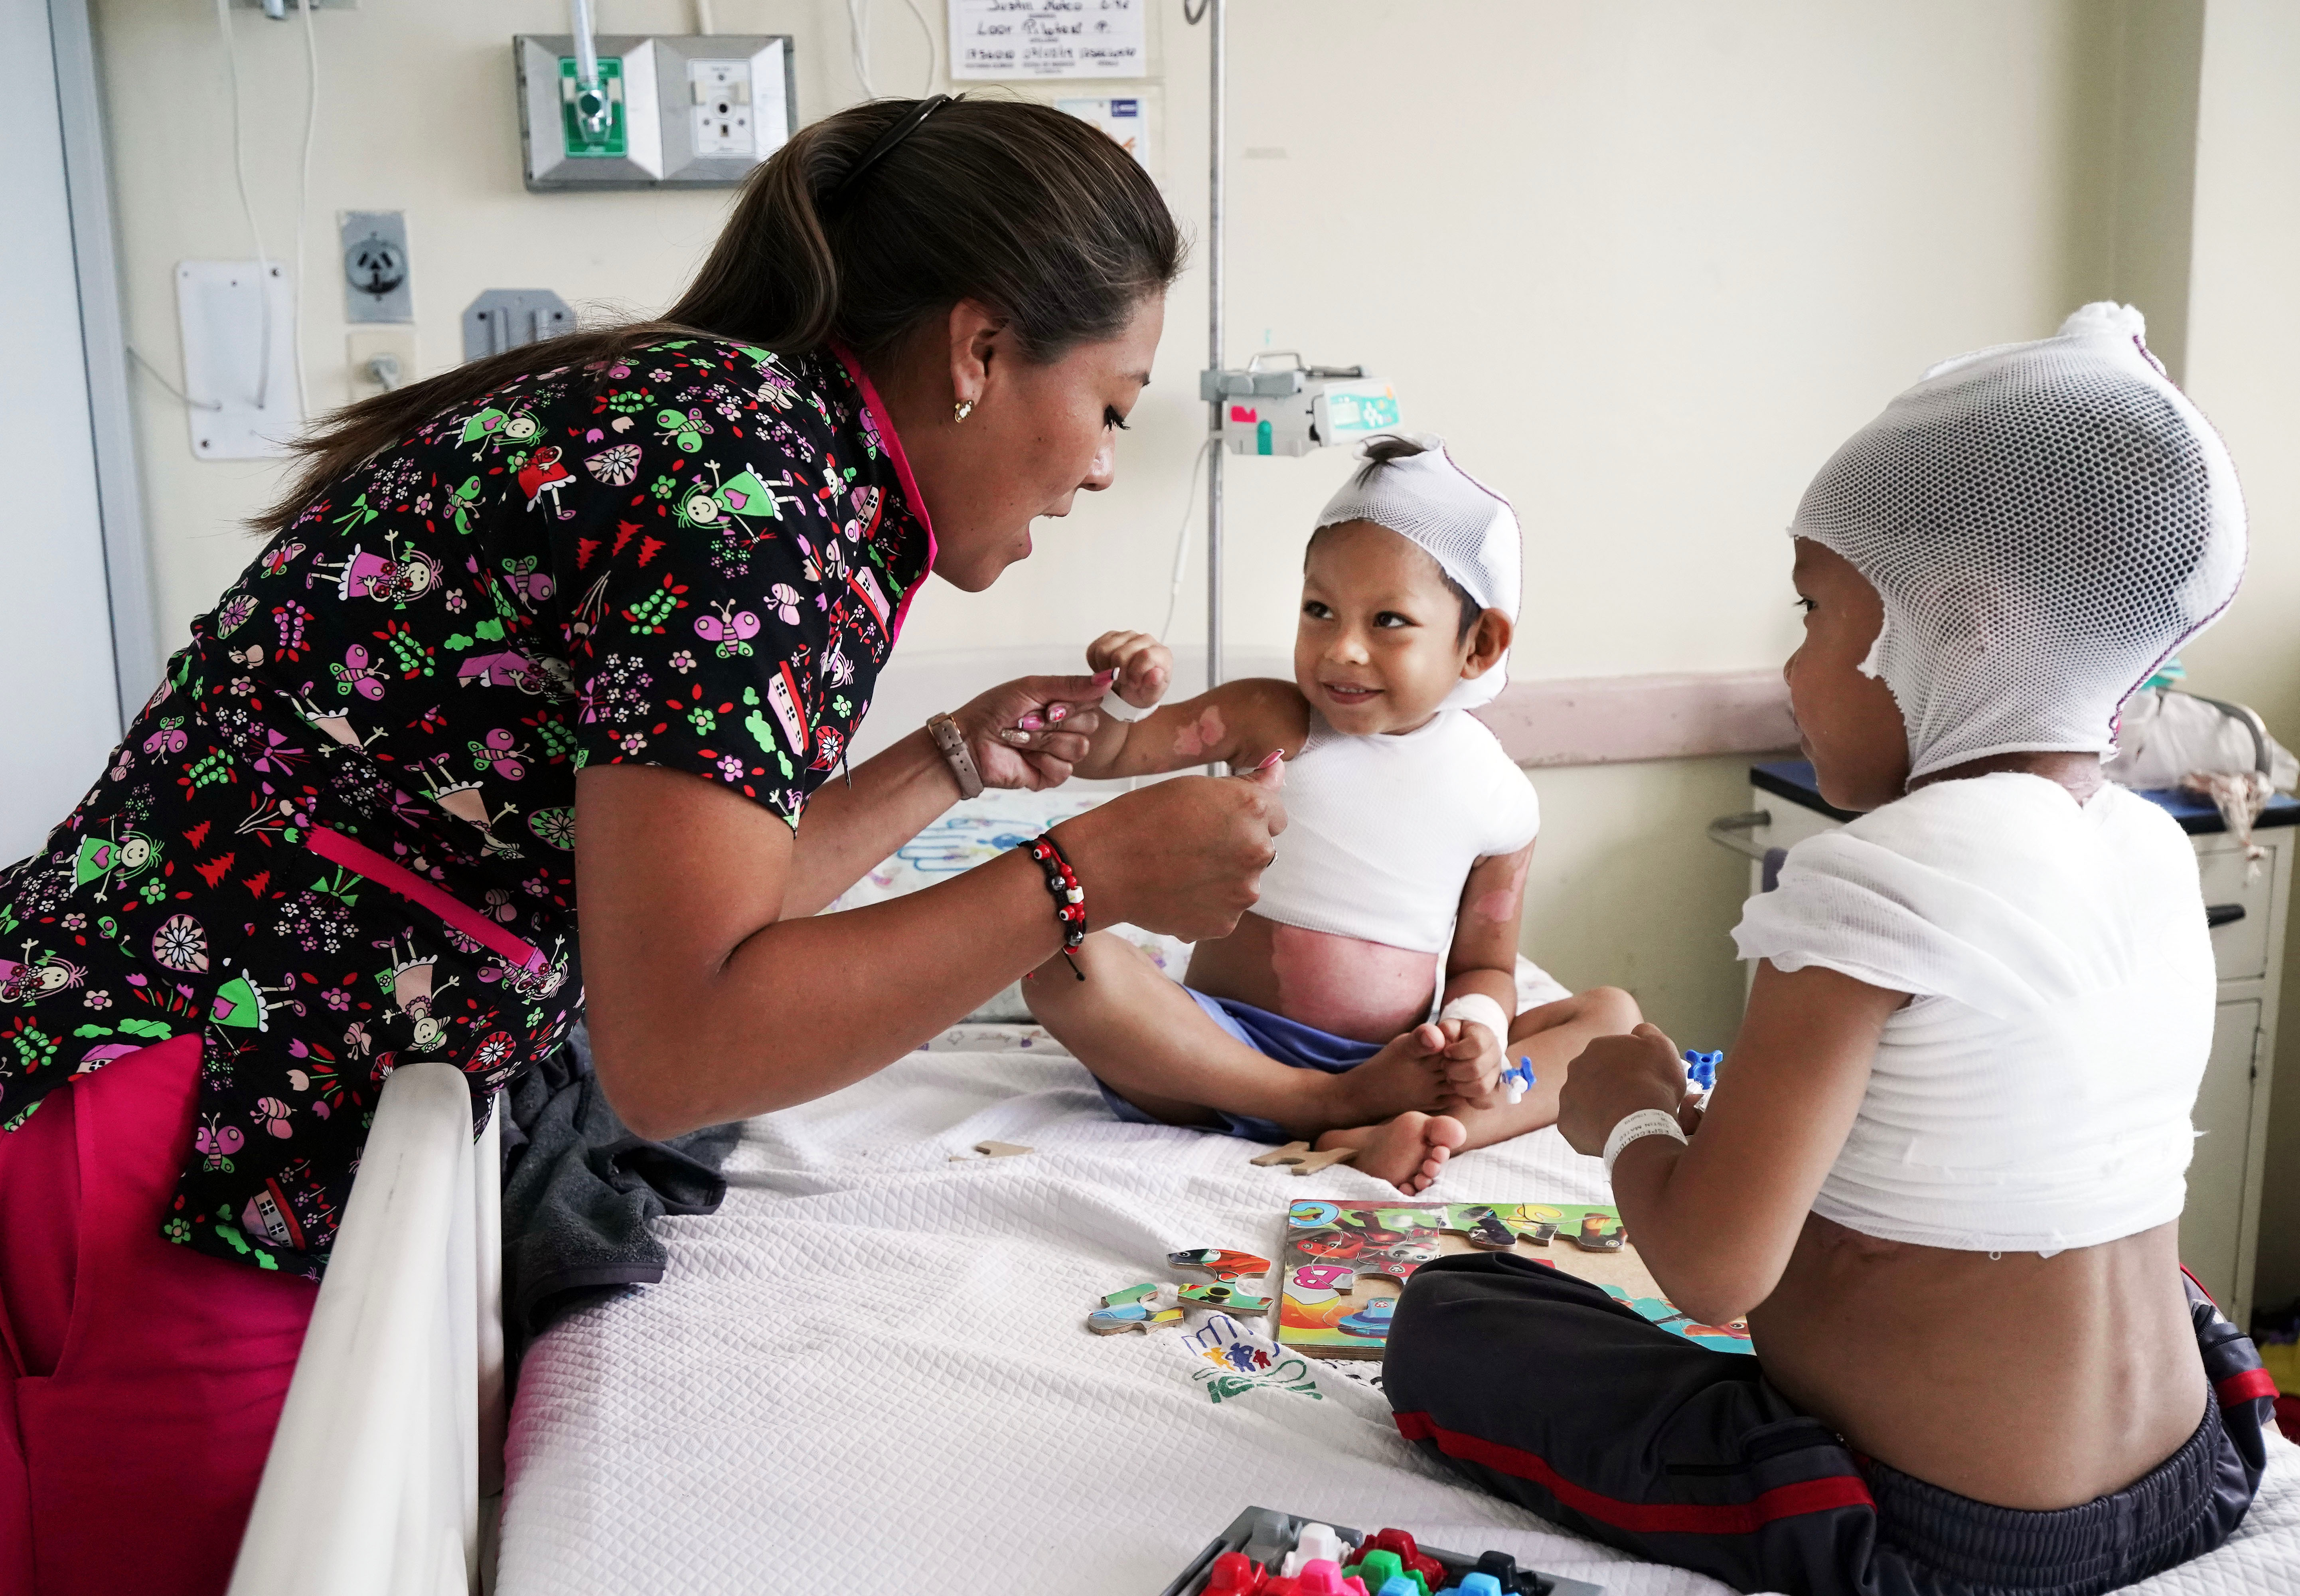 Teacher Vanessa Garcia bumps fists with burn victims Jhon Jairo Ramos Mendoza, center, and Justin Mateo Loor Pilitaxi after they finish a learning task in their hospital room at the Carlos Andrade Marin Hospital in Quito, Ecuador, on Tuesday, Aug. 27, 2019.